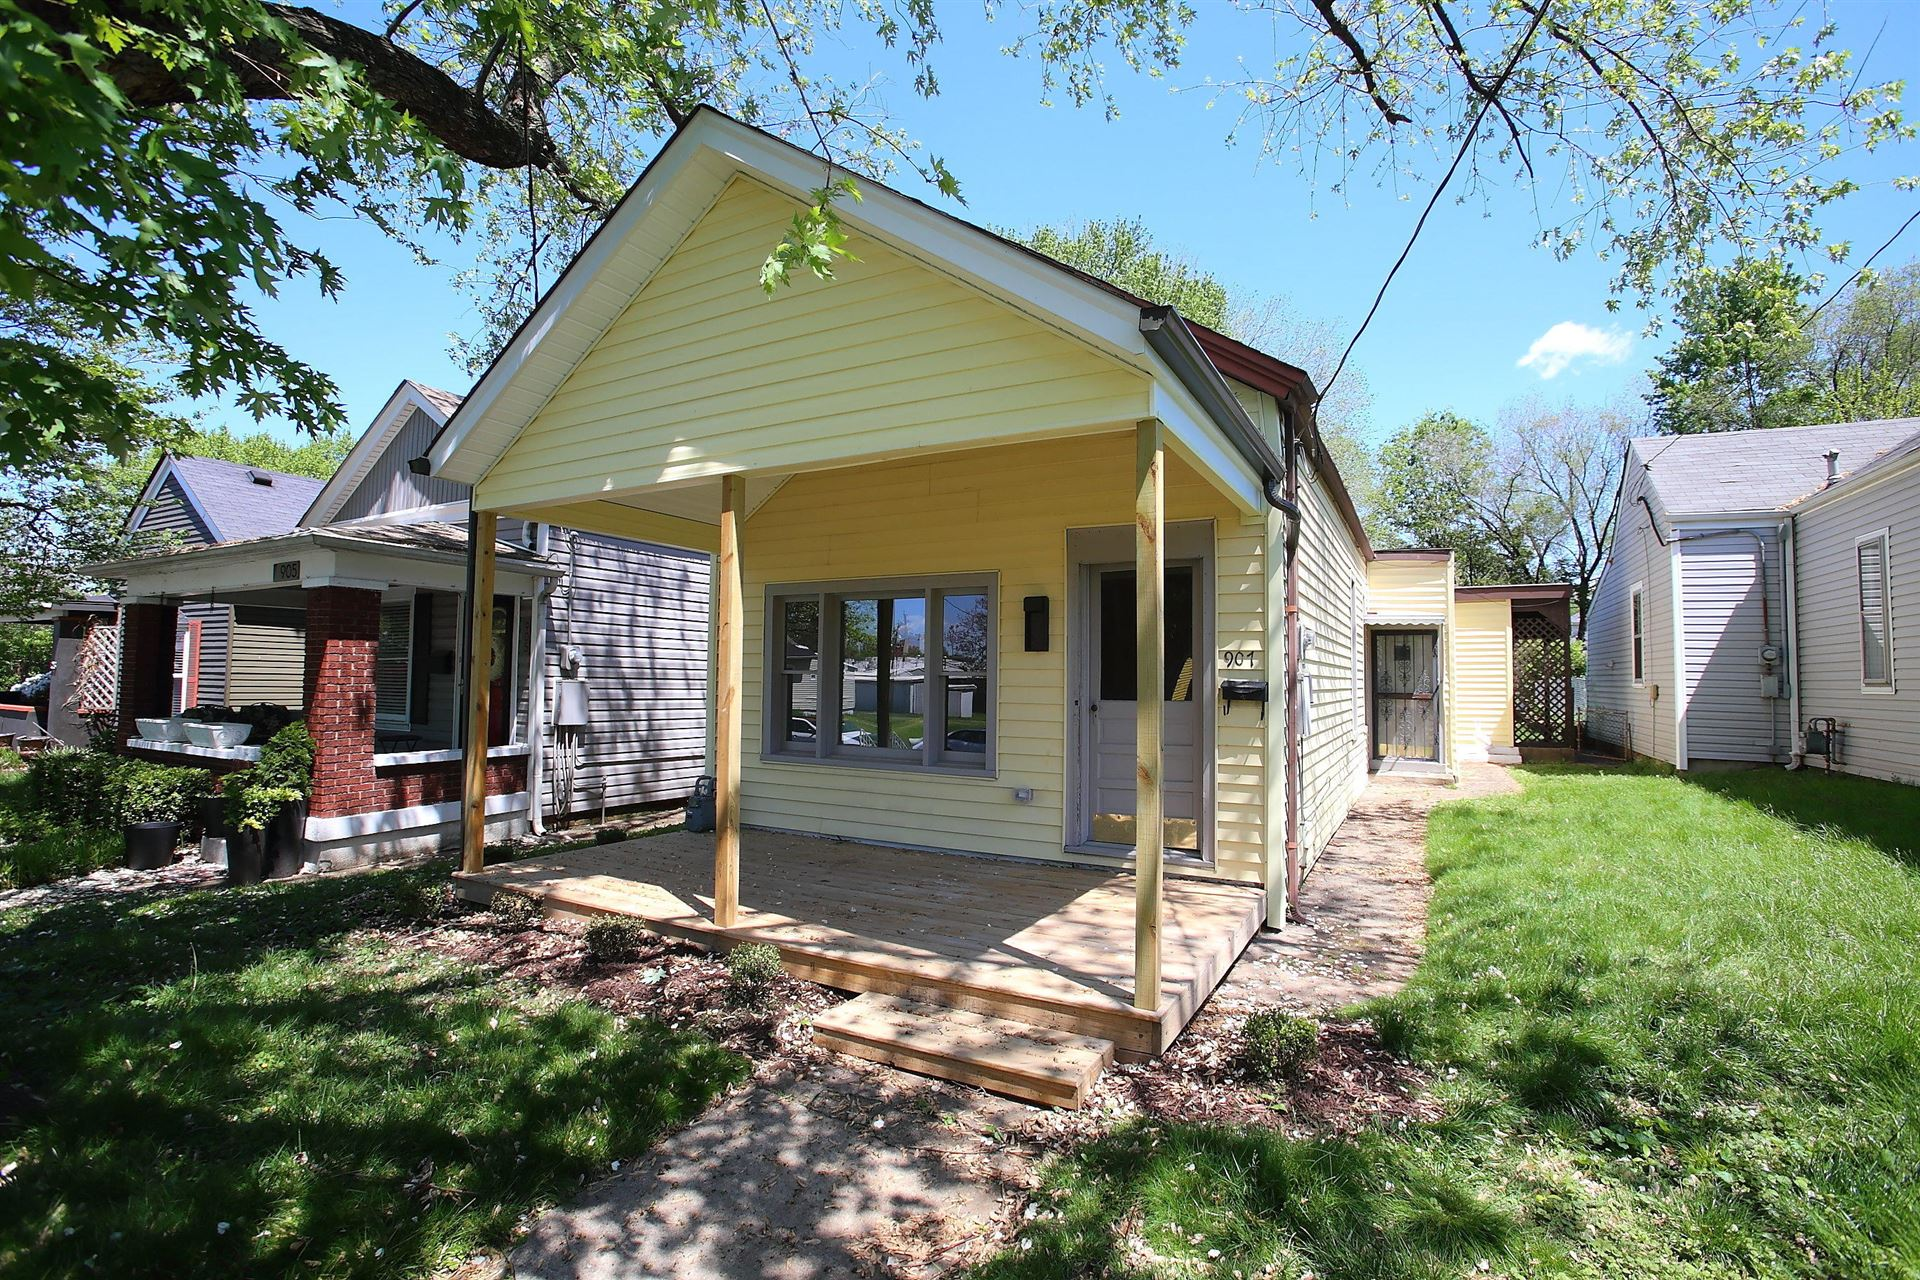 Photo for 907 Charles St, Louisville, KY 40204 (MLS # 1584725)